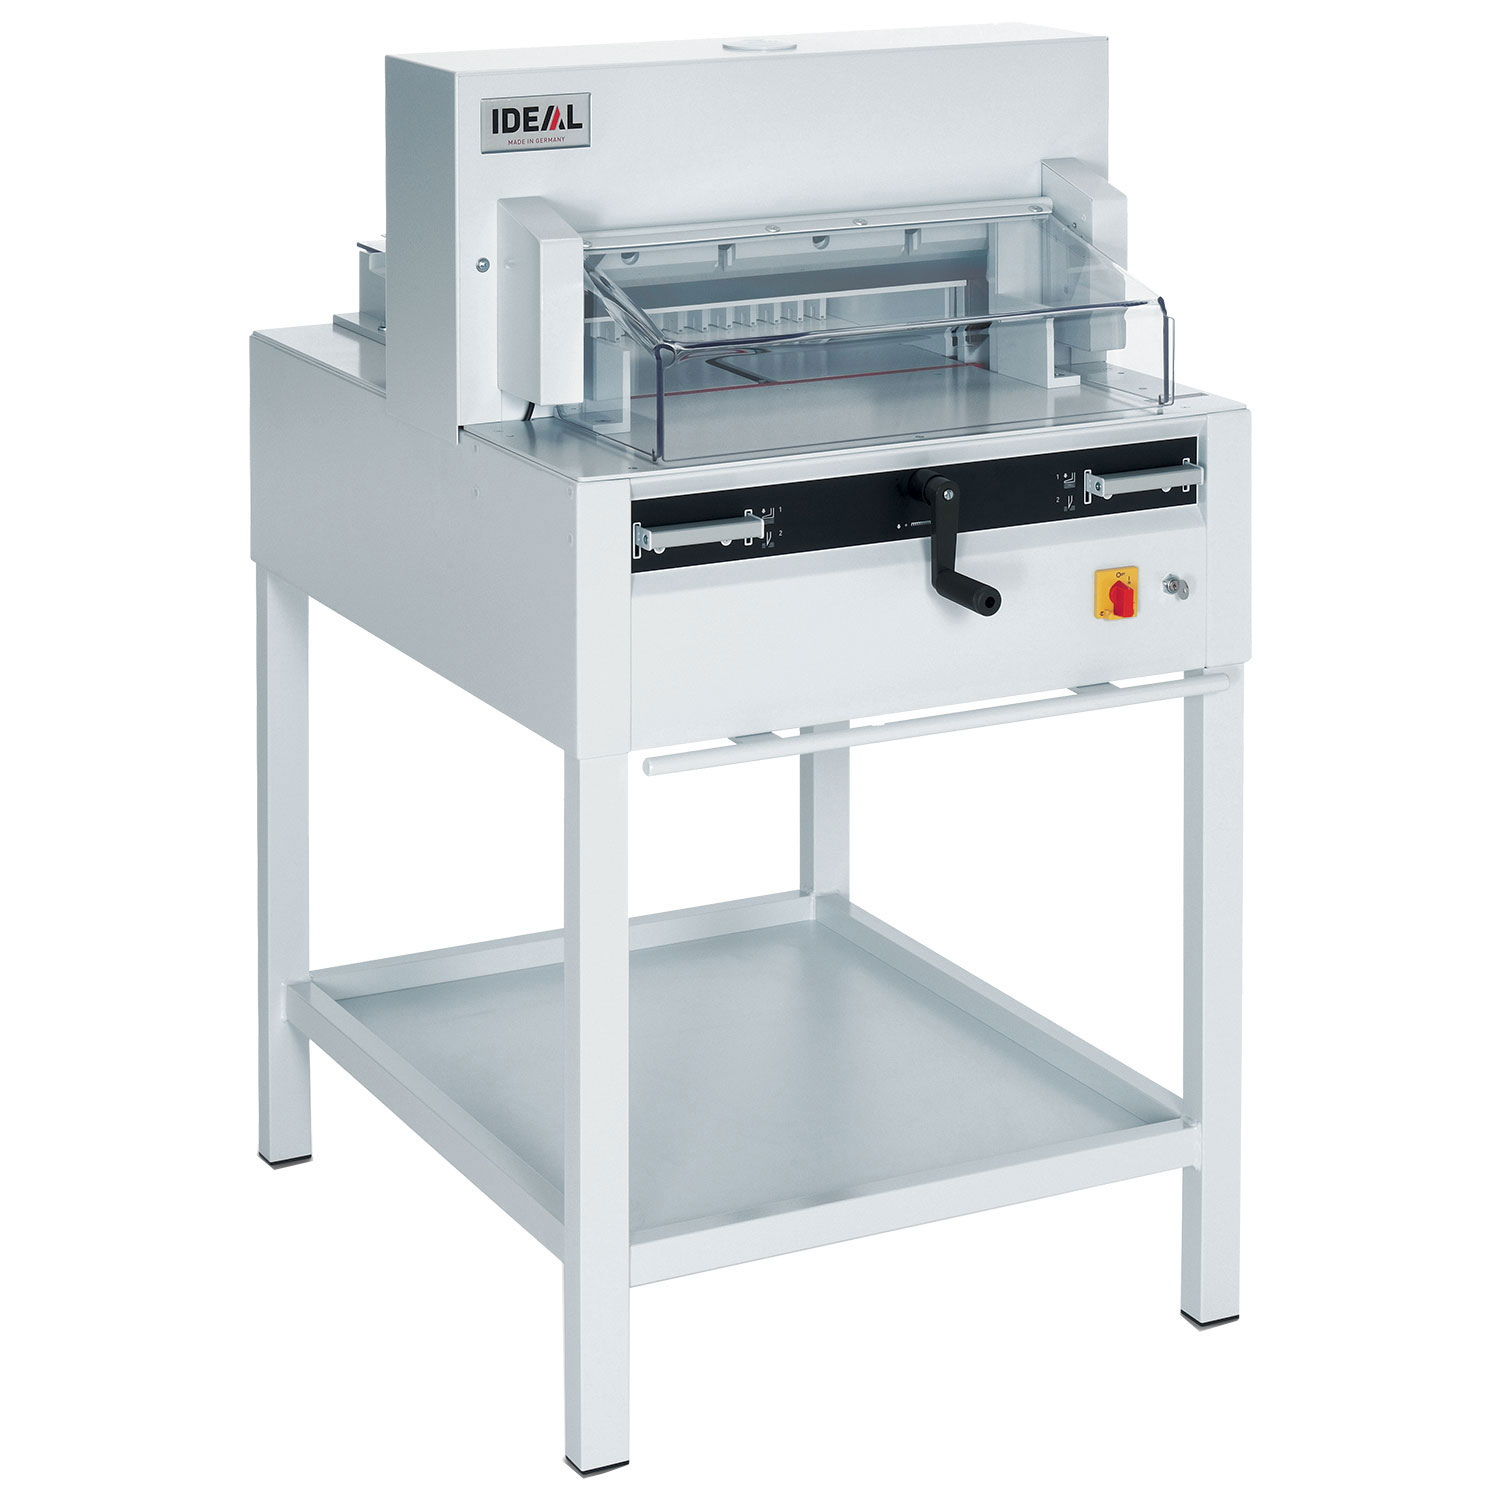 IDEAL 4850 EASY-CUT Guillotine With Auto-Clamp